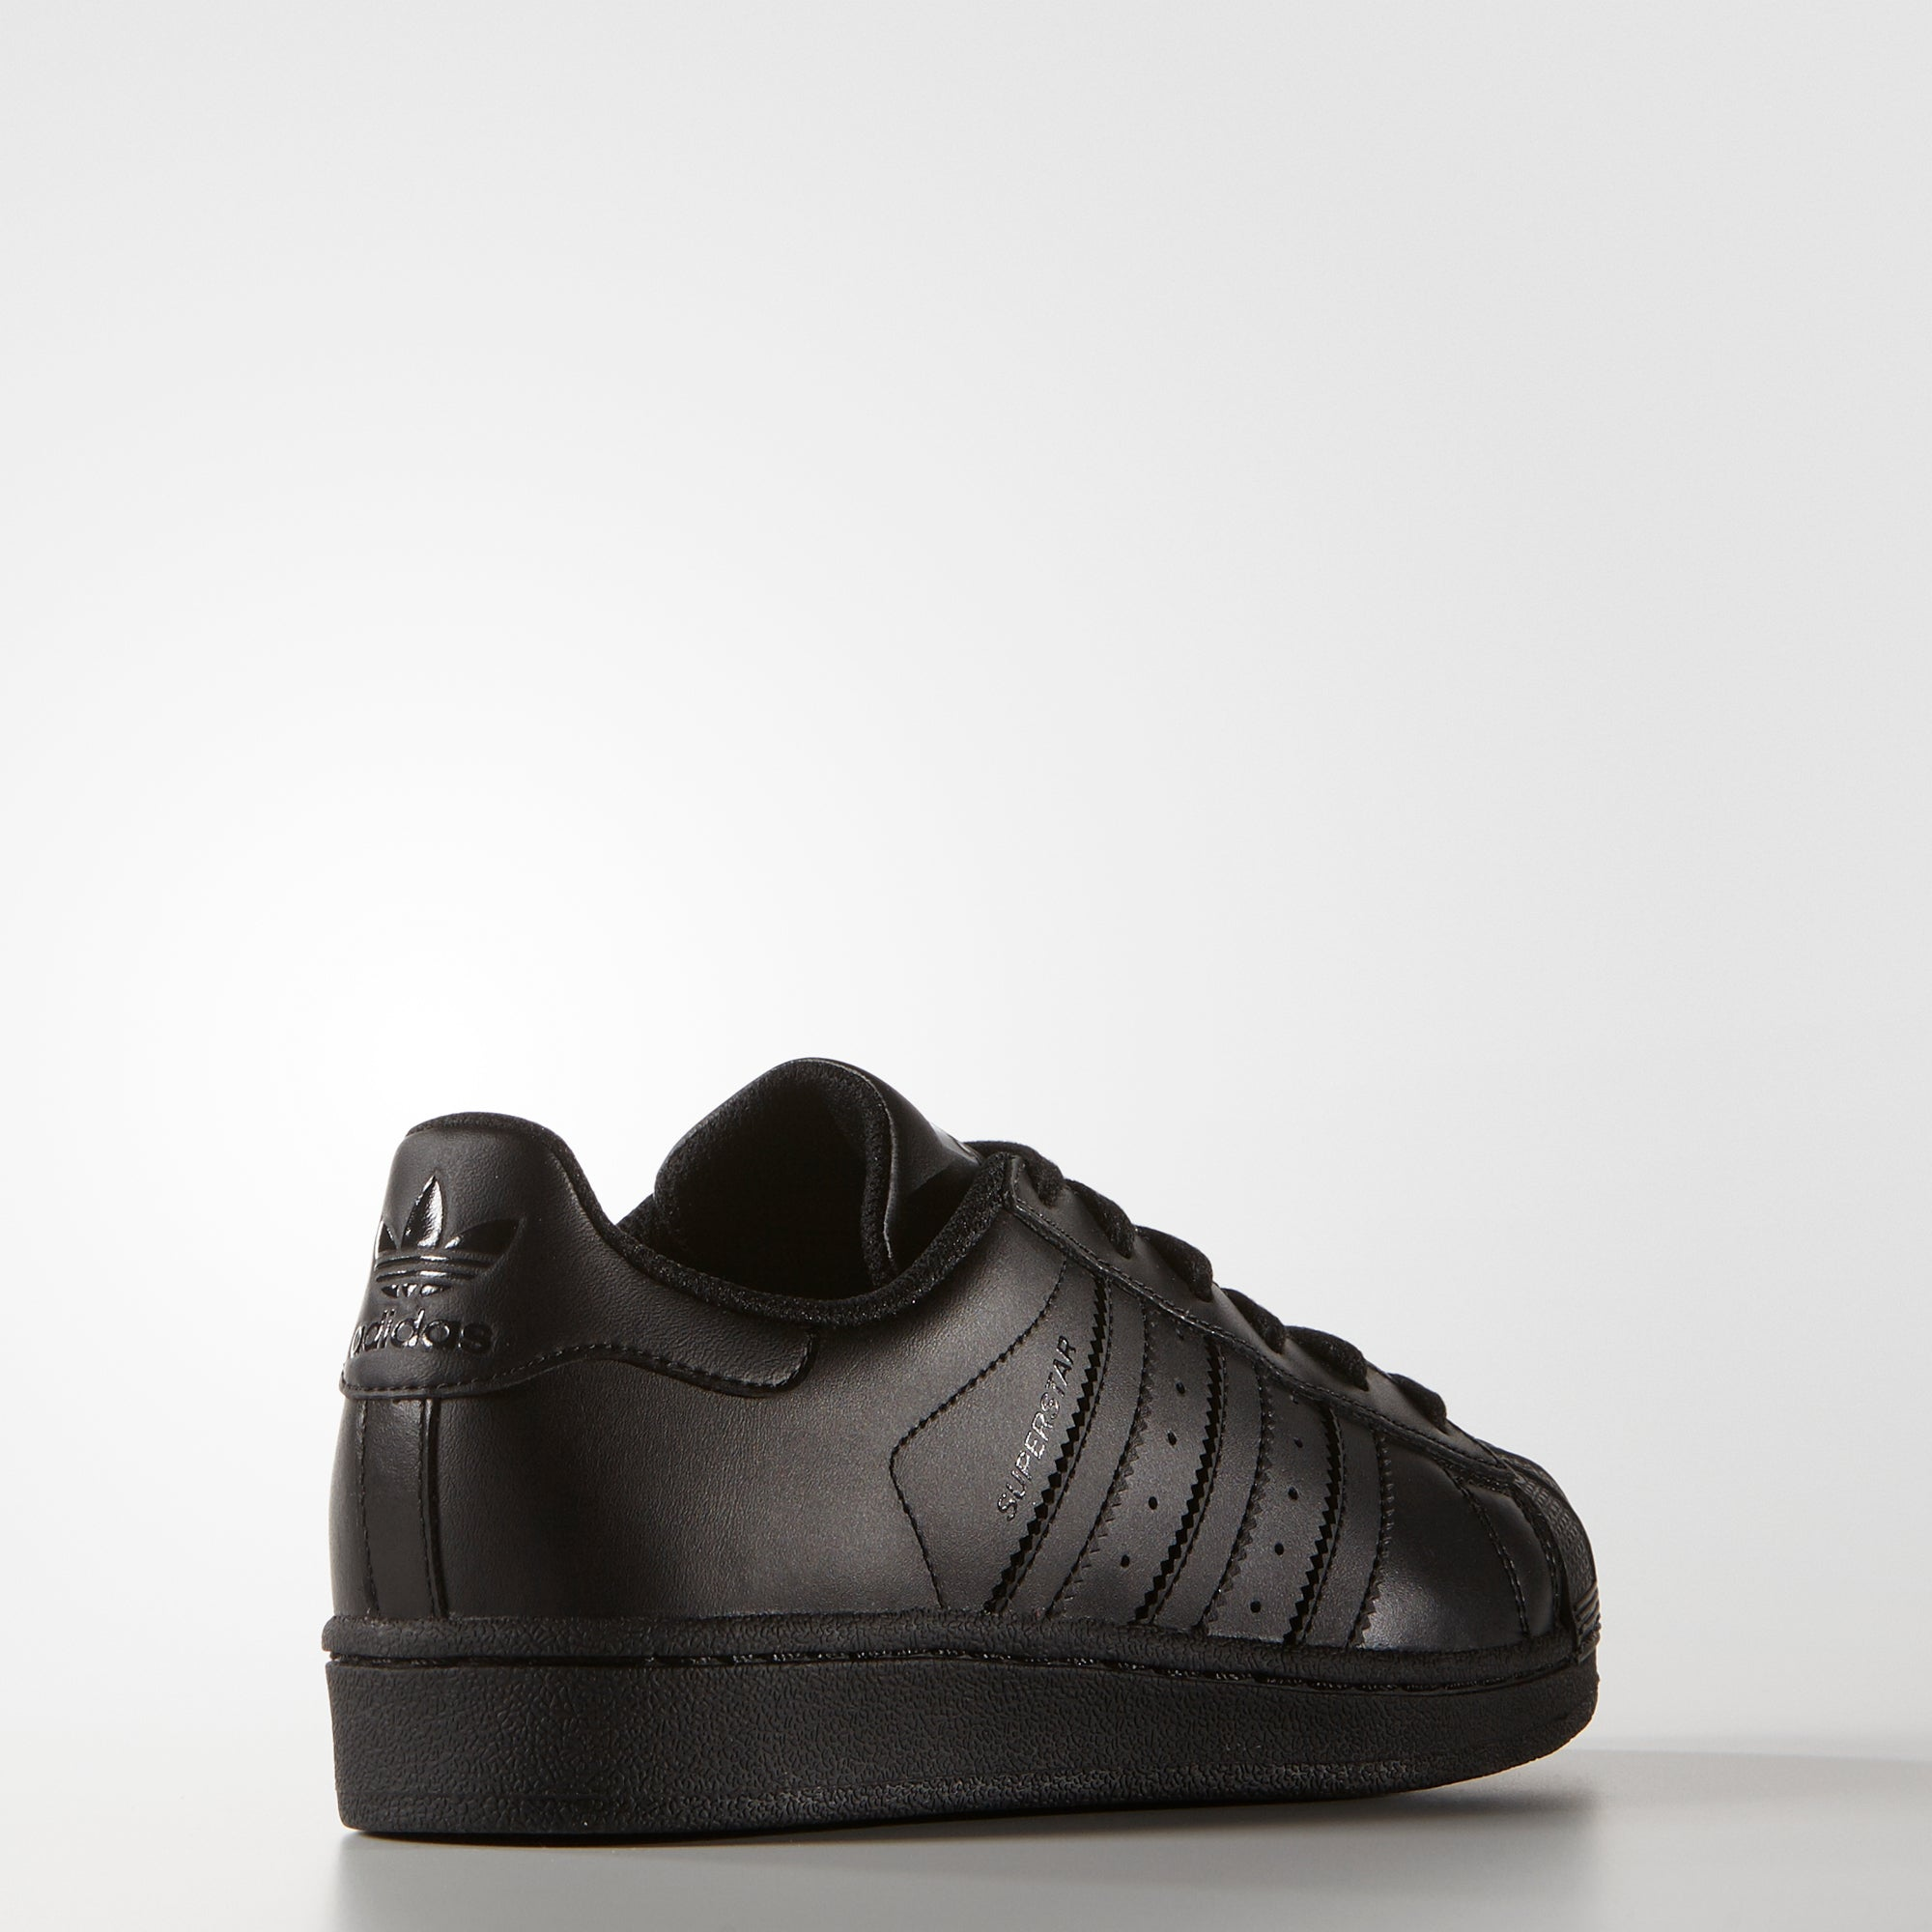 new arrival cf0b3 c9cd0 adidas Superstar Foundation Shoes Triple Black | Chicago ...